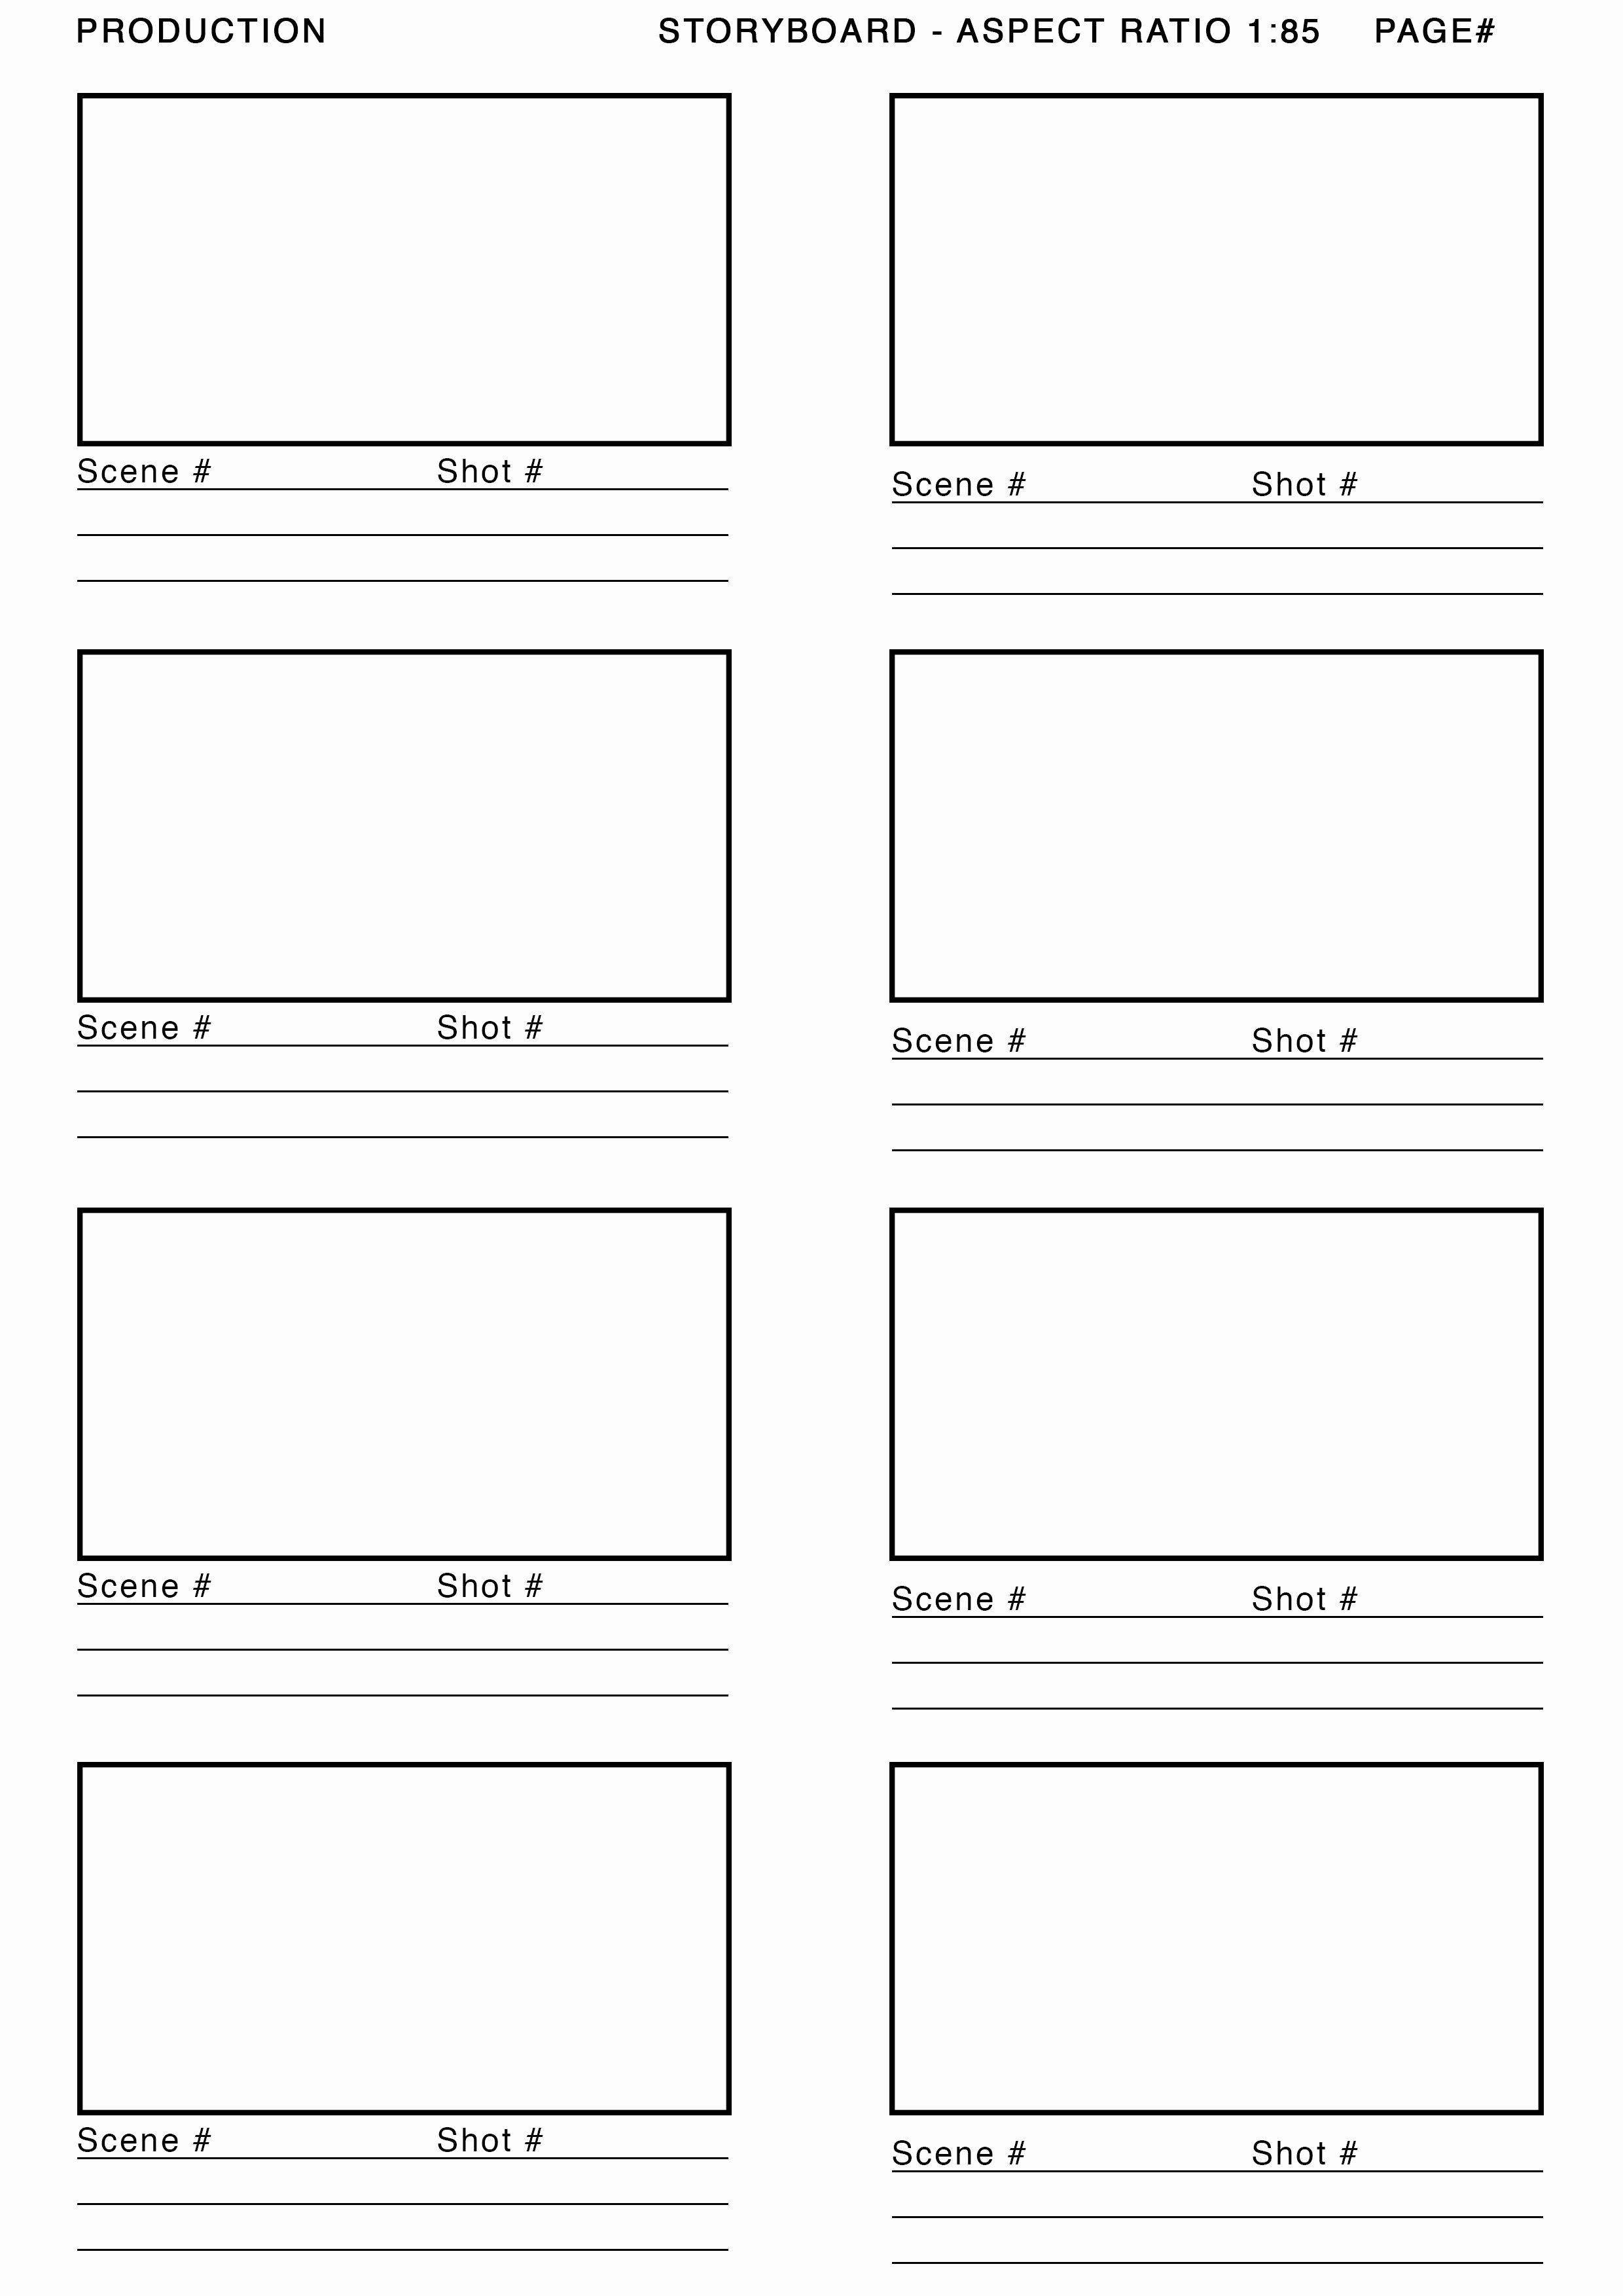 Film Storyboard Template Pdf New 1 85 aspect Ratio Storyboard Template Google Search